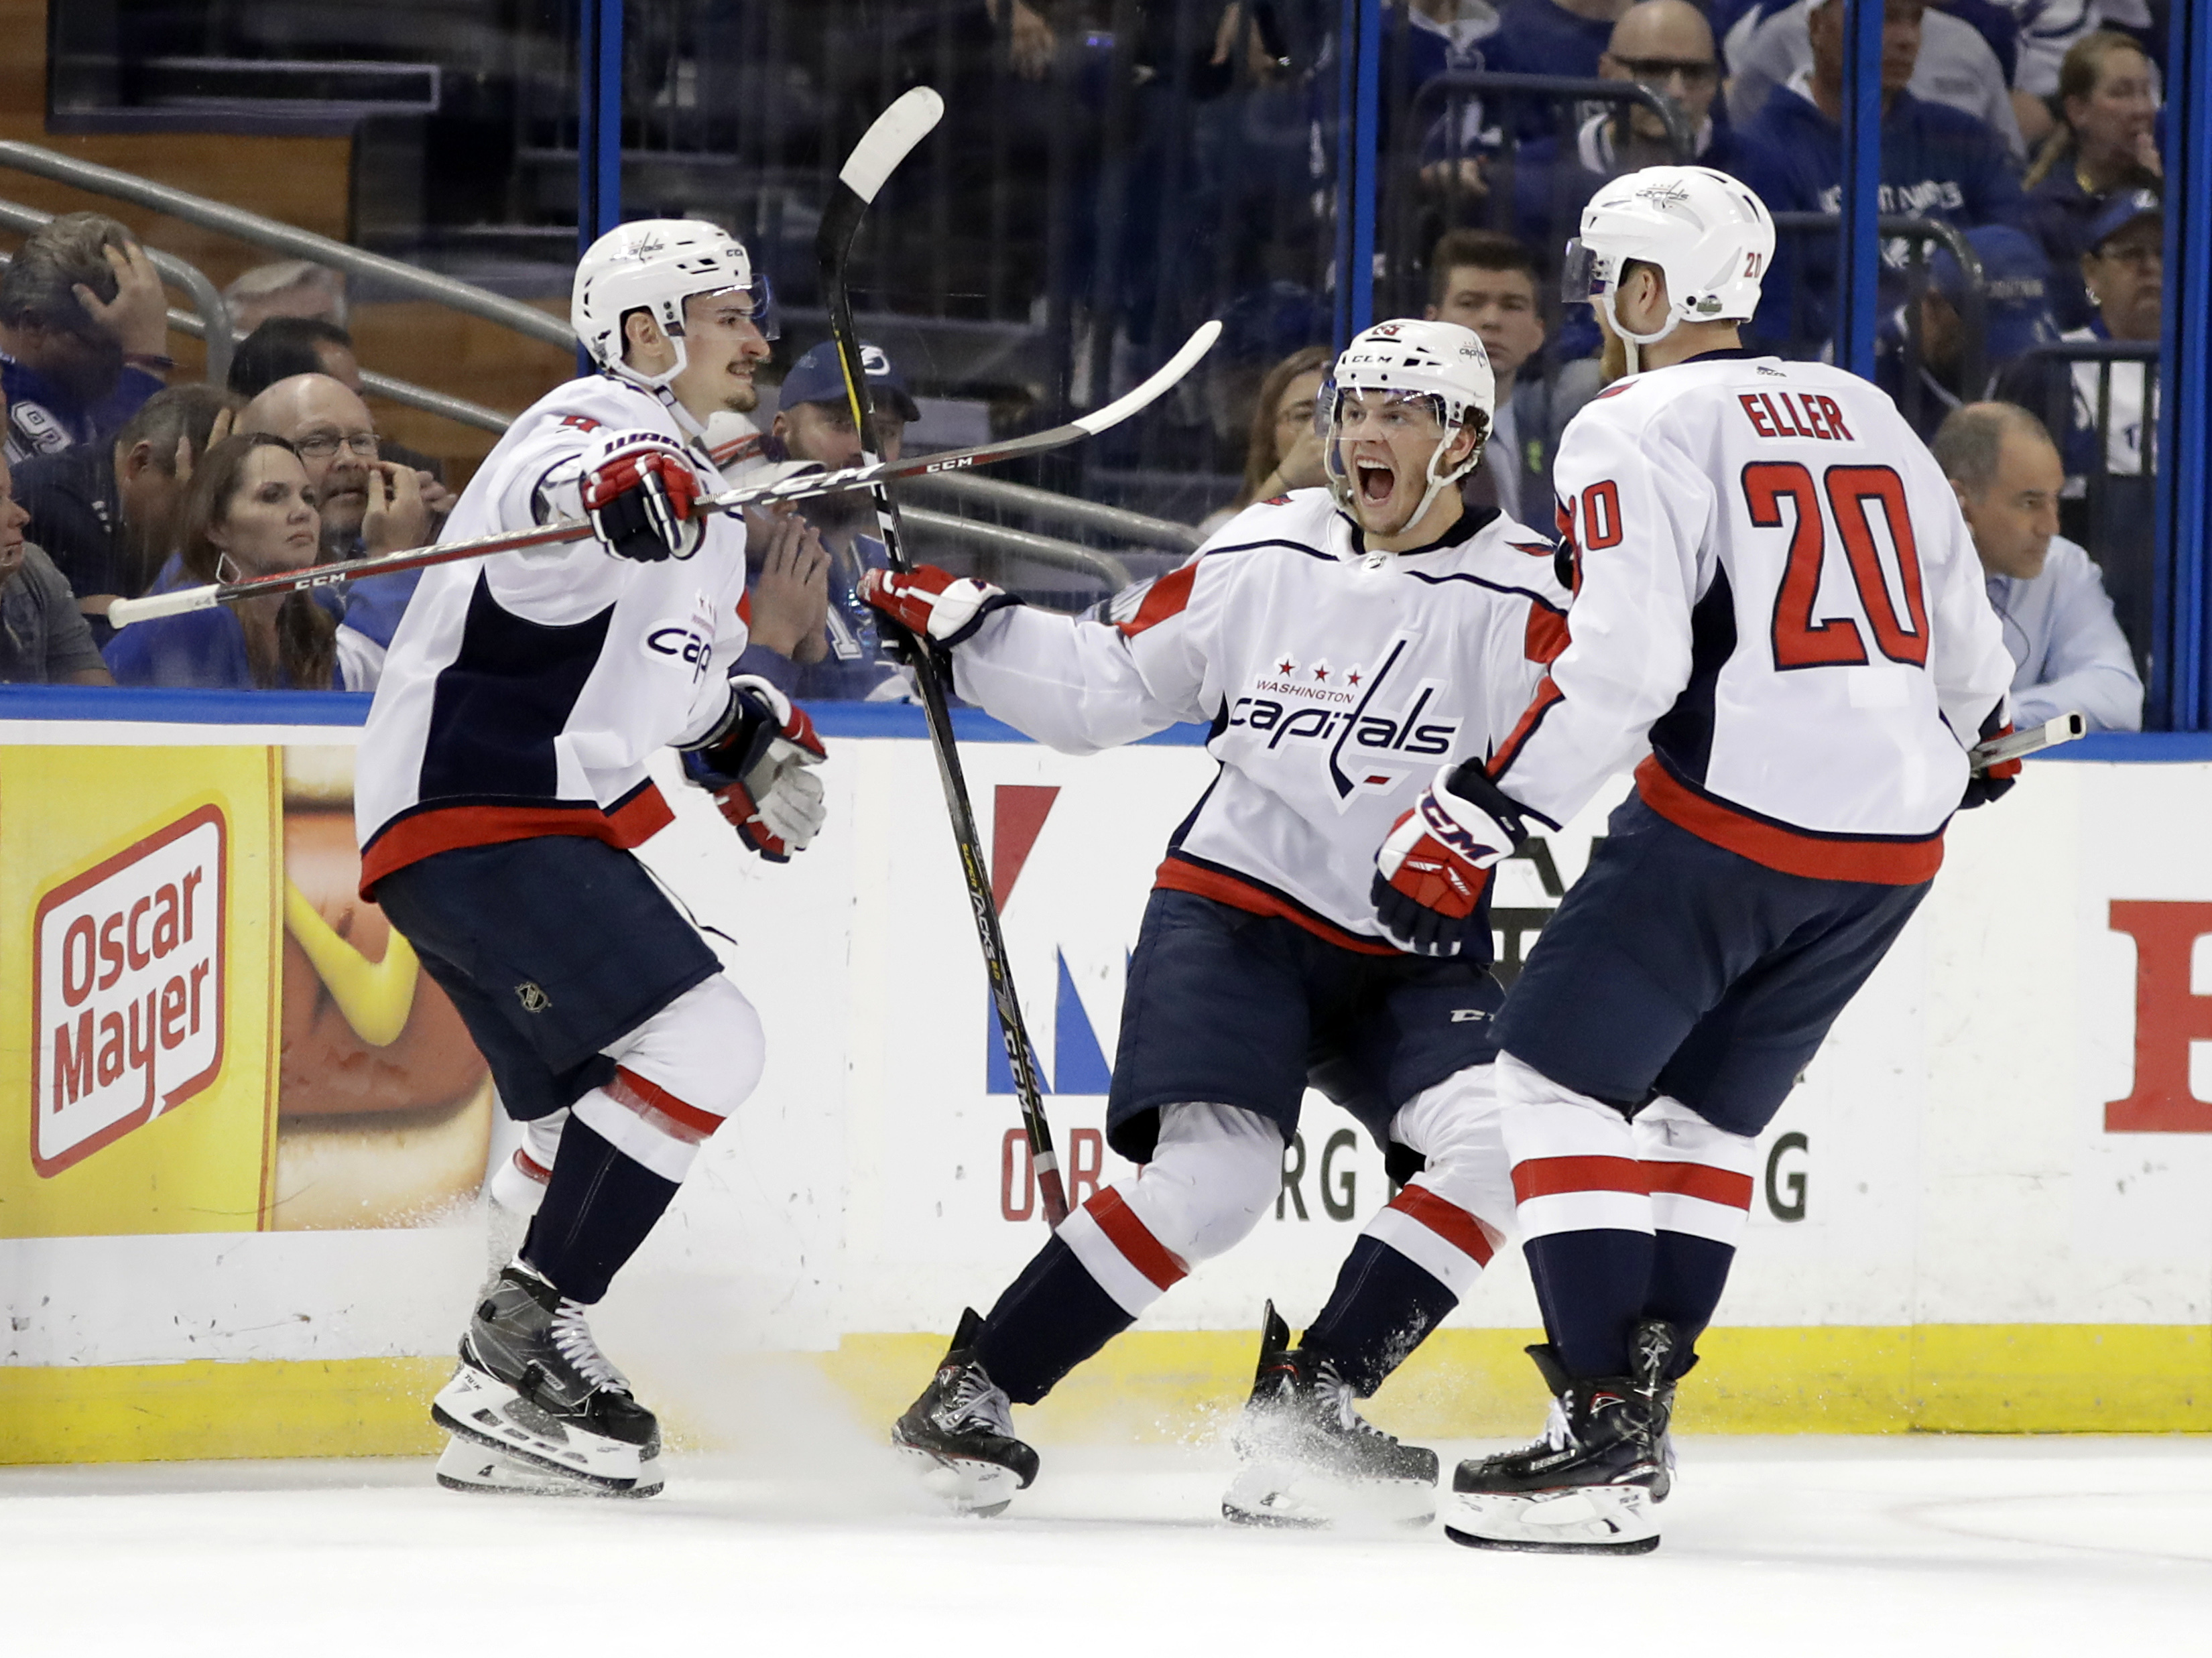 bb0382aae Alex Ovechkin scored early and Andre Burakovsky added two second-period  goals to help the Washington Capitals put a decade of playoff frustration  behind ...